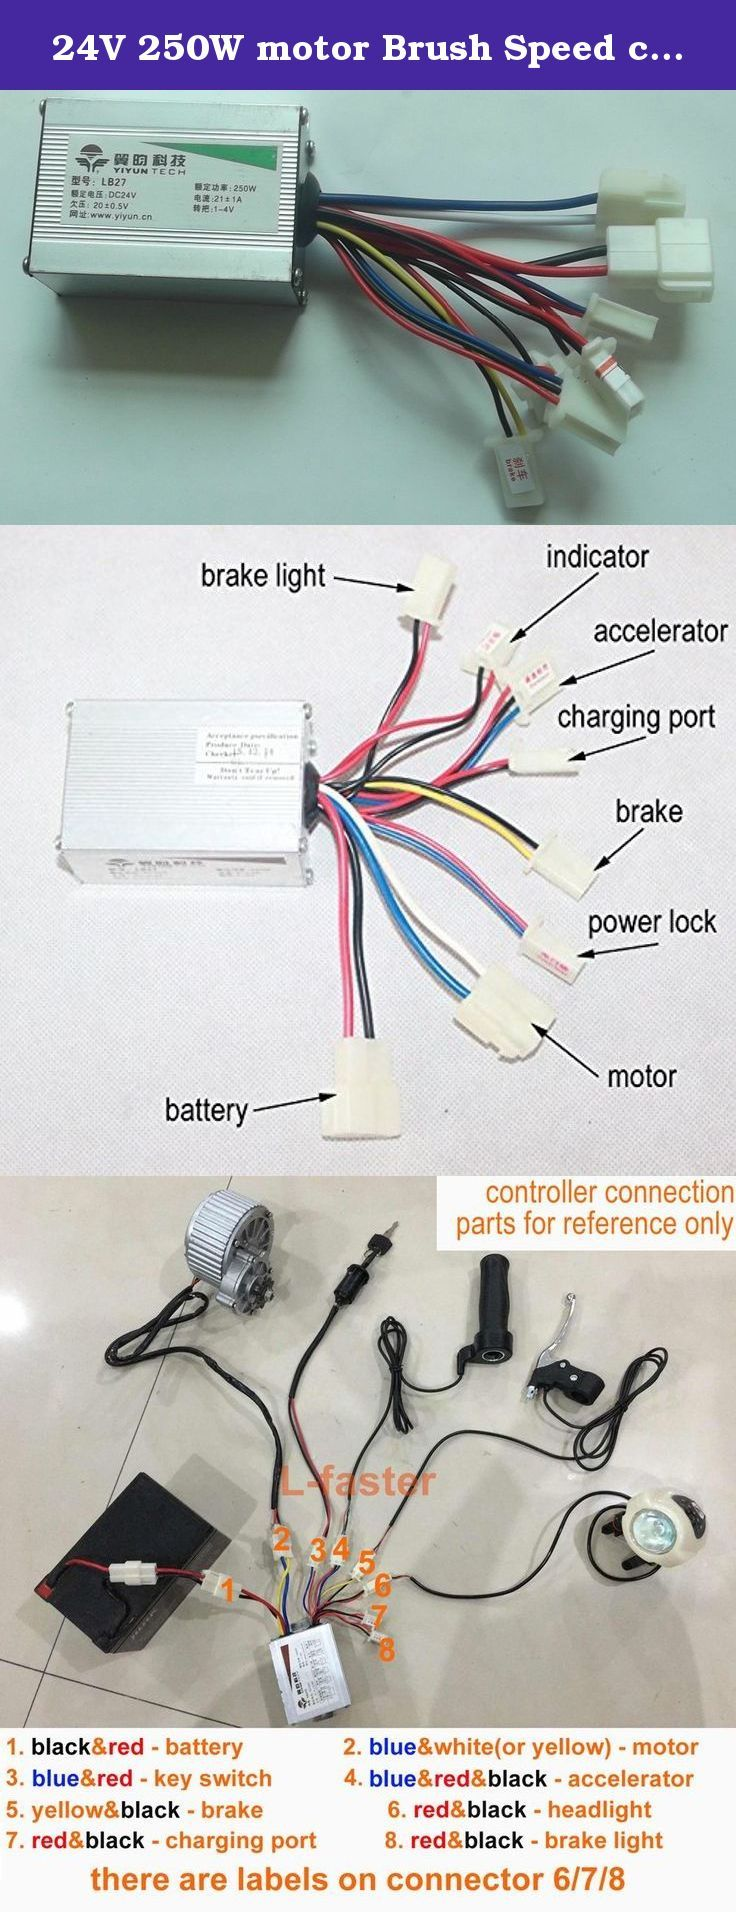 24v 250w Motor Brush Speed Controller For Electric Bike Bicycle  U0026 Scooter   U2026